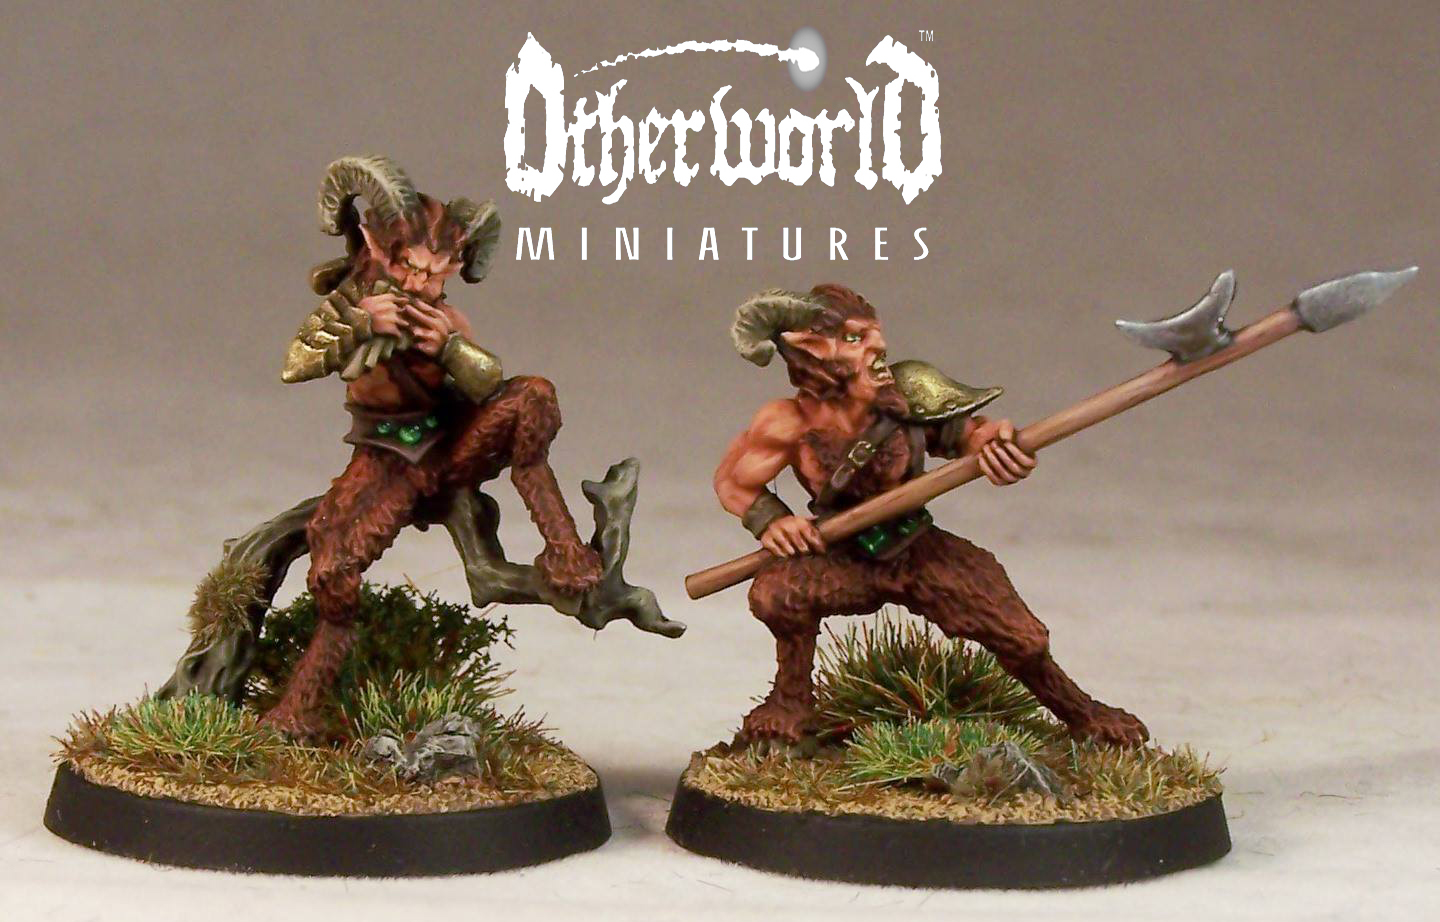 http://otherworldminiatures.co.uk/figures/wp-content/uploads/2015/12/Satyrs-Jan-2016.jpg